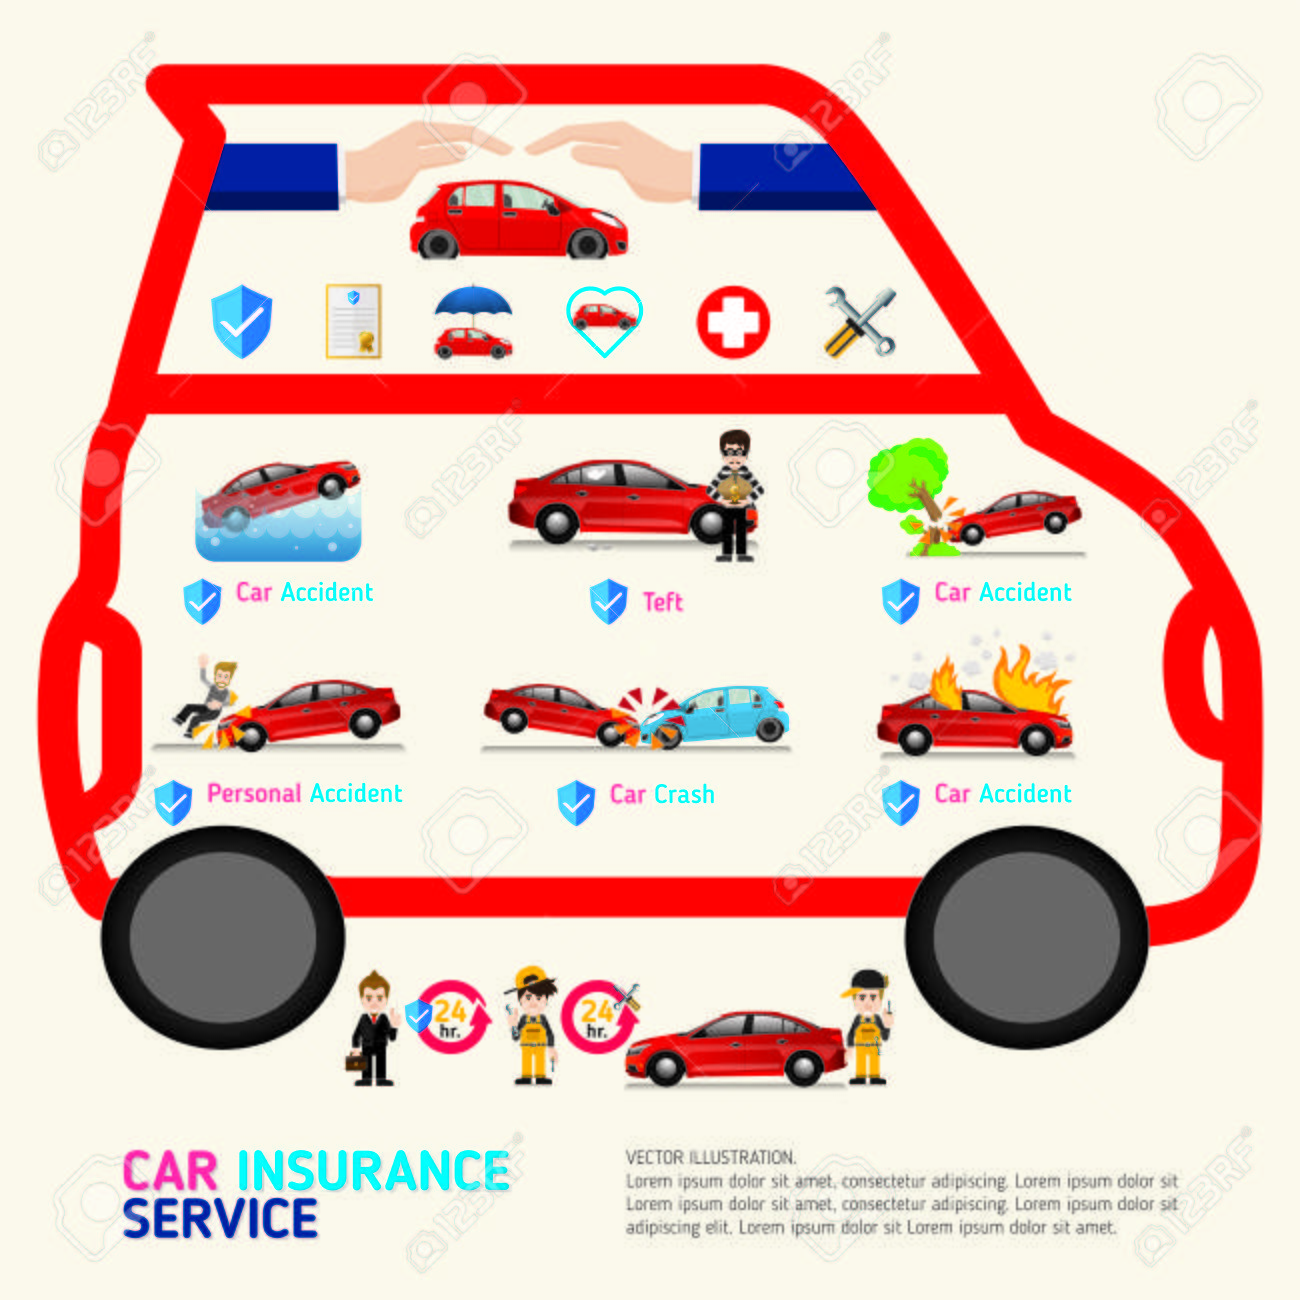 Car Insurance Business Service Icons Template Can Be Used For